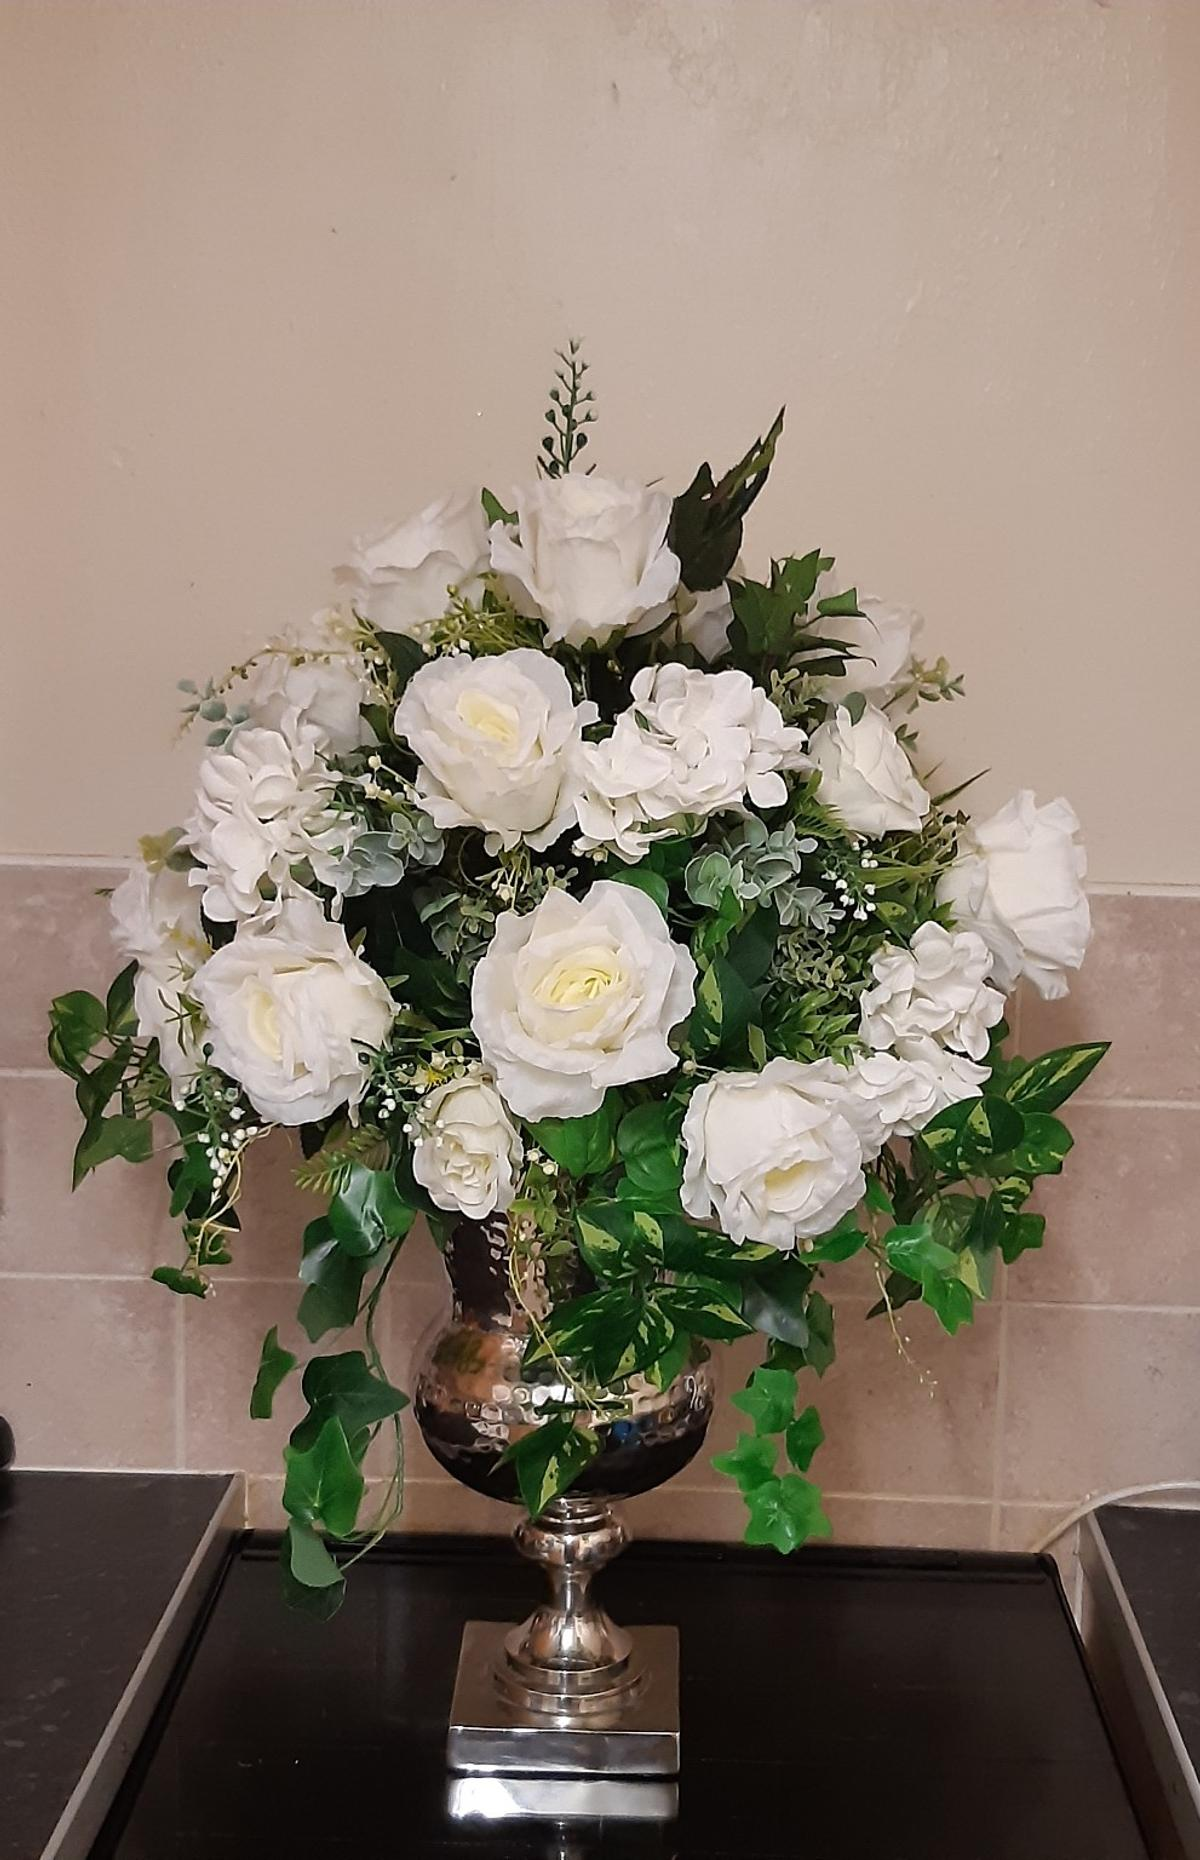 Very Large Artificial Flower Arrangement In Dl14 Auckland For 145 00 For Sale Shpock